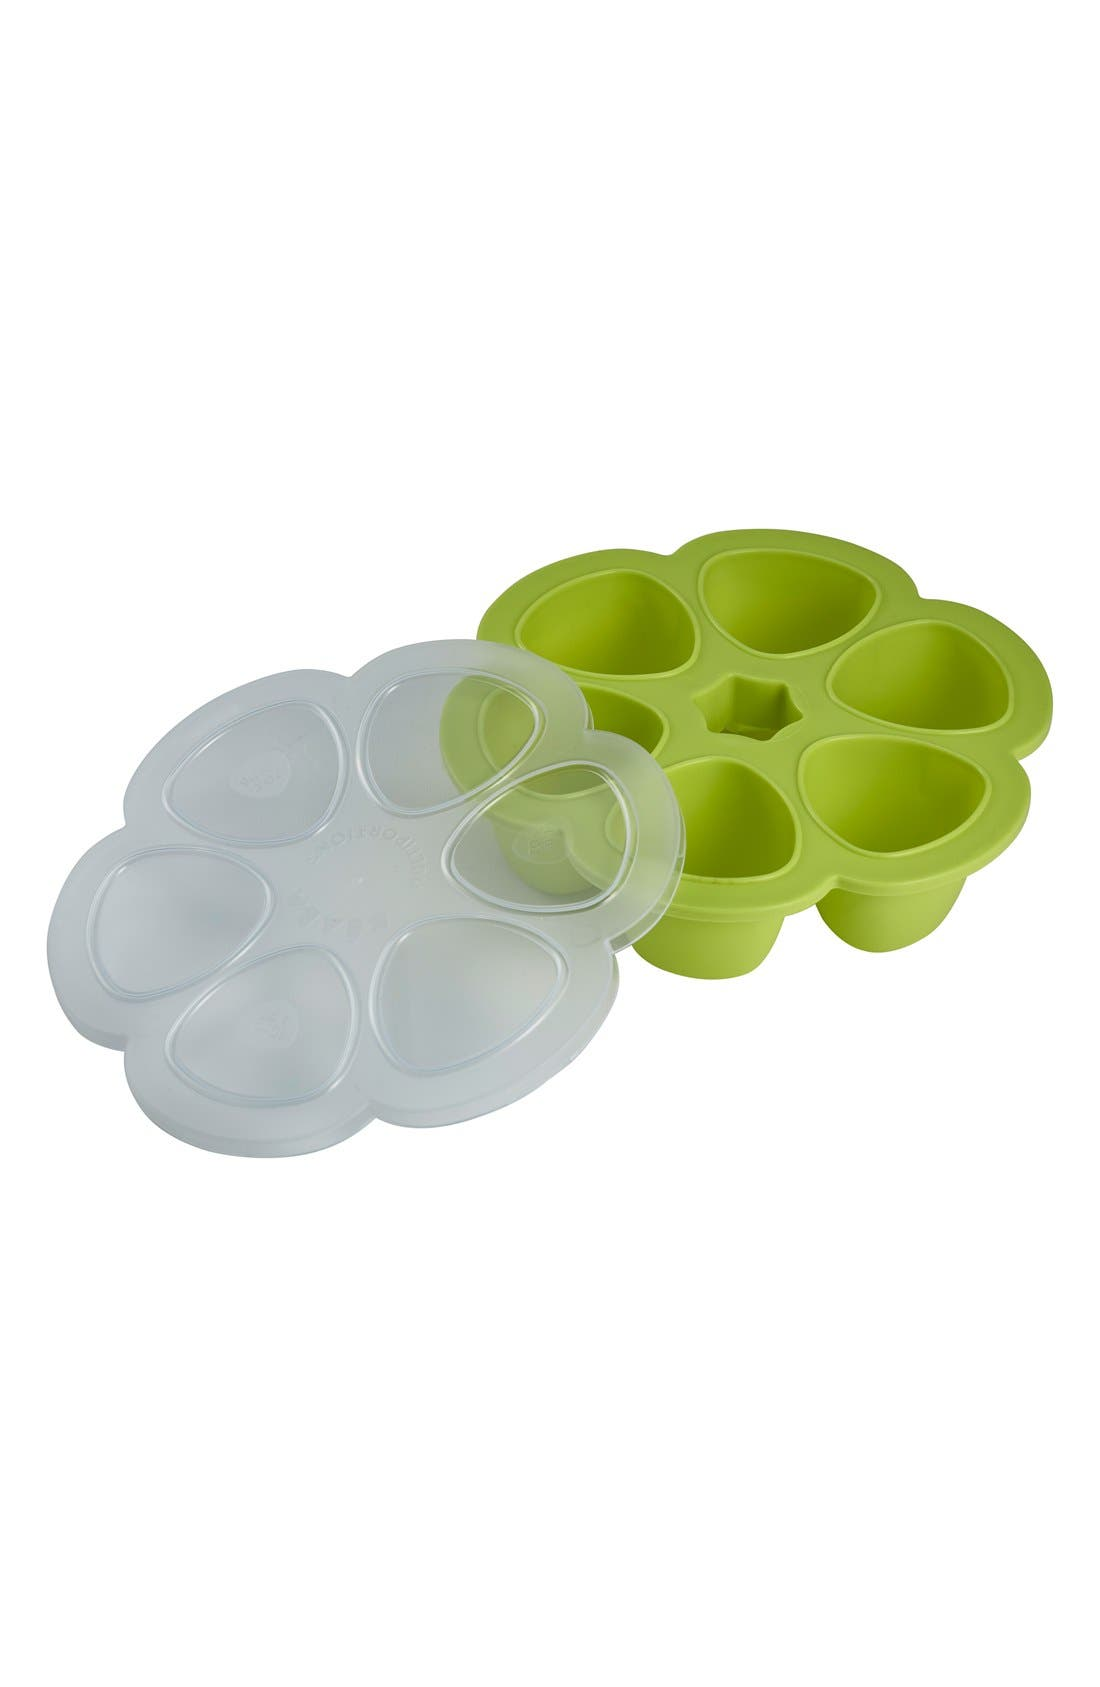 'Multiportions' 3 oz. Food Cup Tray,                             Alternate thumbnail 2, color,                             320